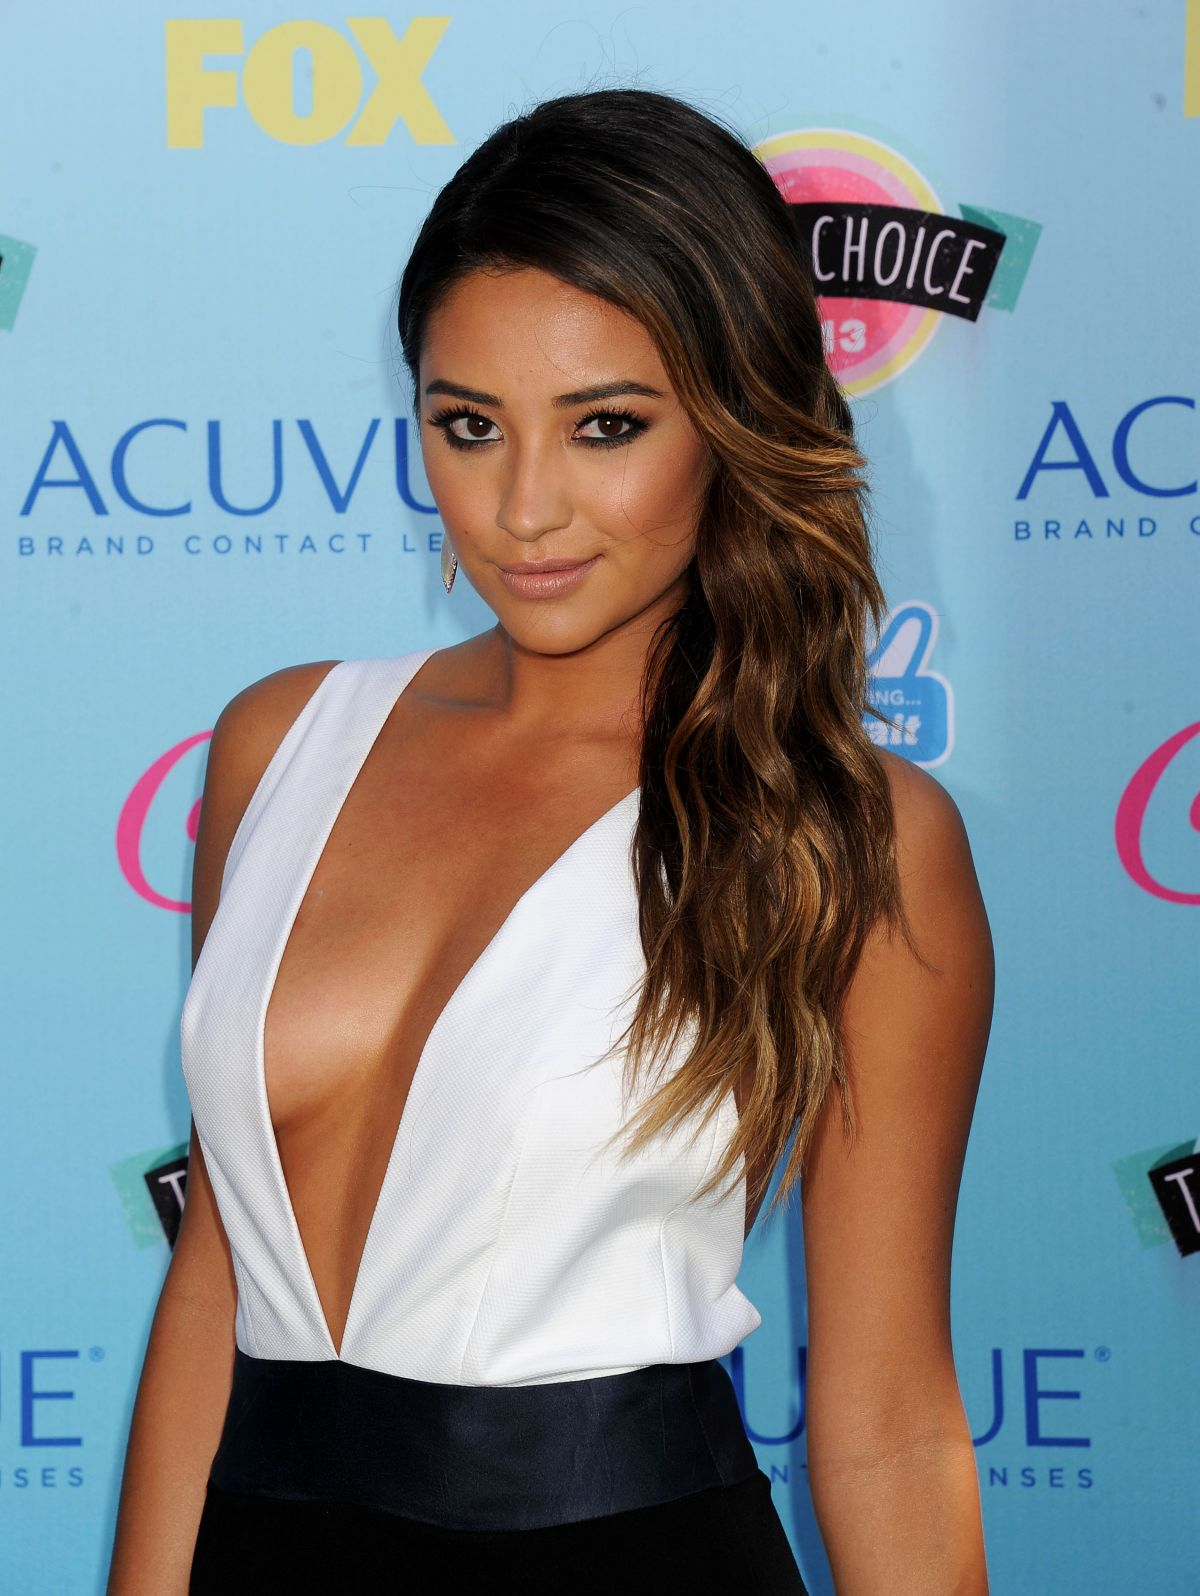 Shay Mitchell shows off her cleavage at the 2013 Teen Choice Awards | BootymotionTV